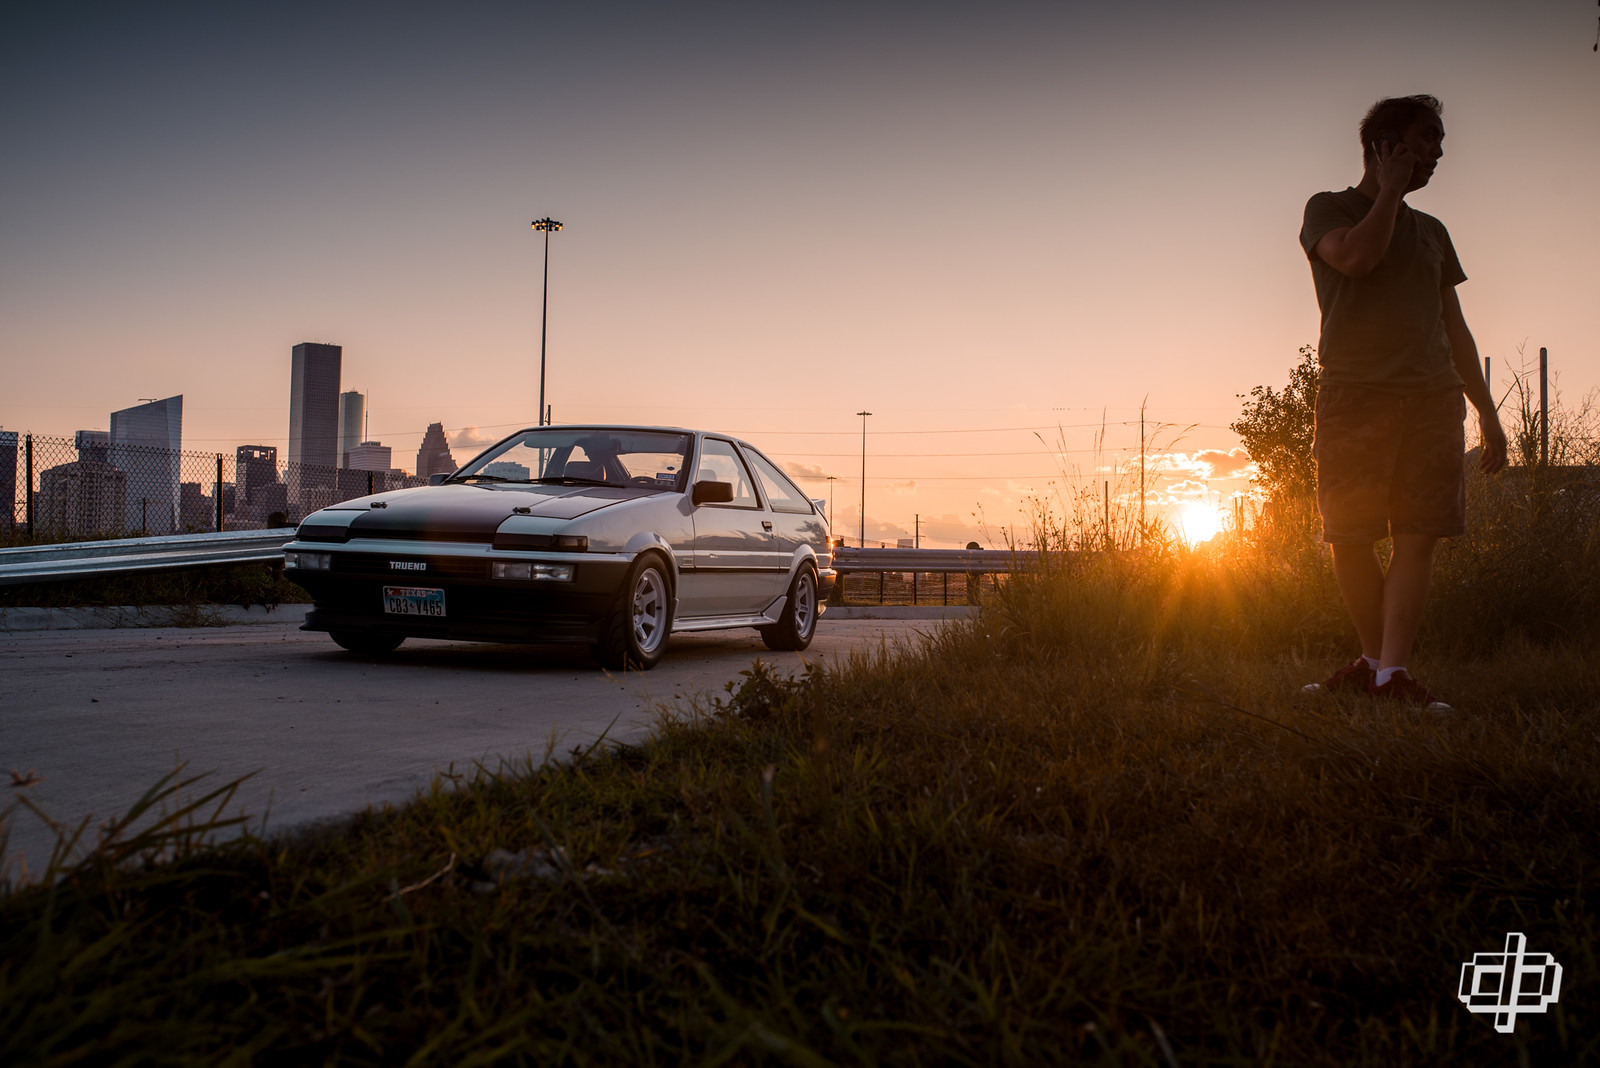 The Smooth Operator - Sammy's 1986 Toyota Corolla SR5 Converted GTS